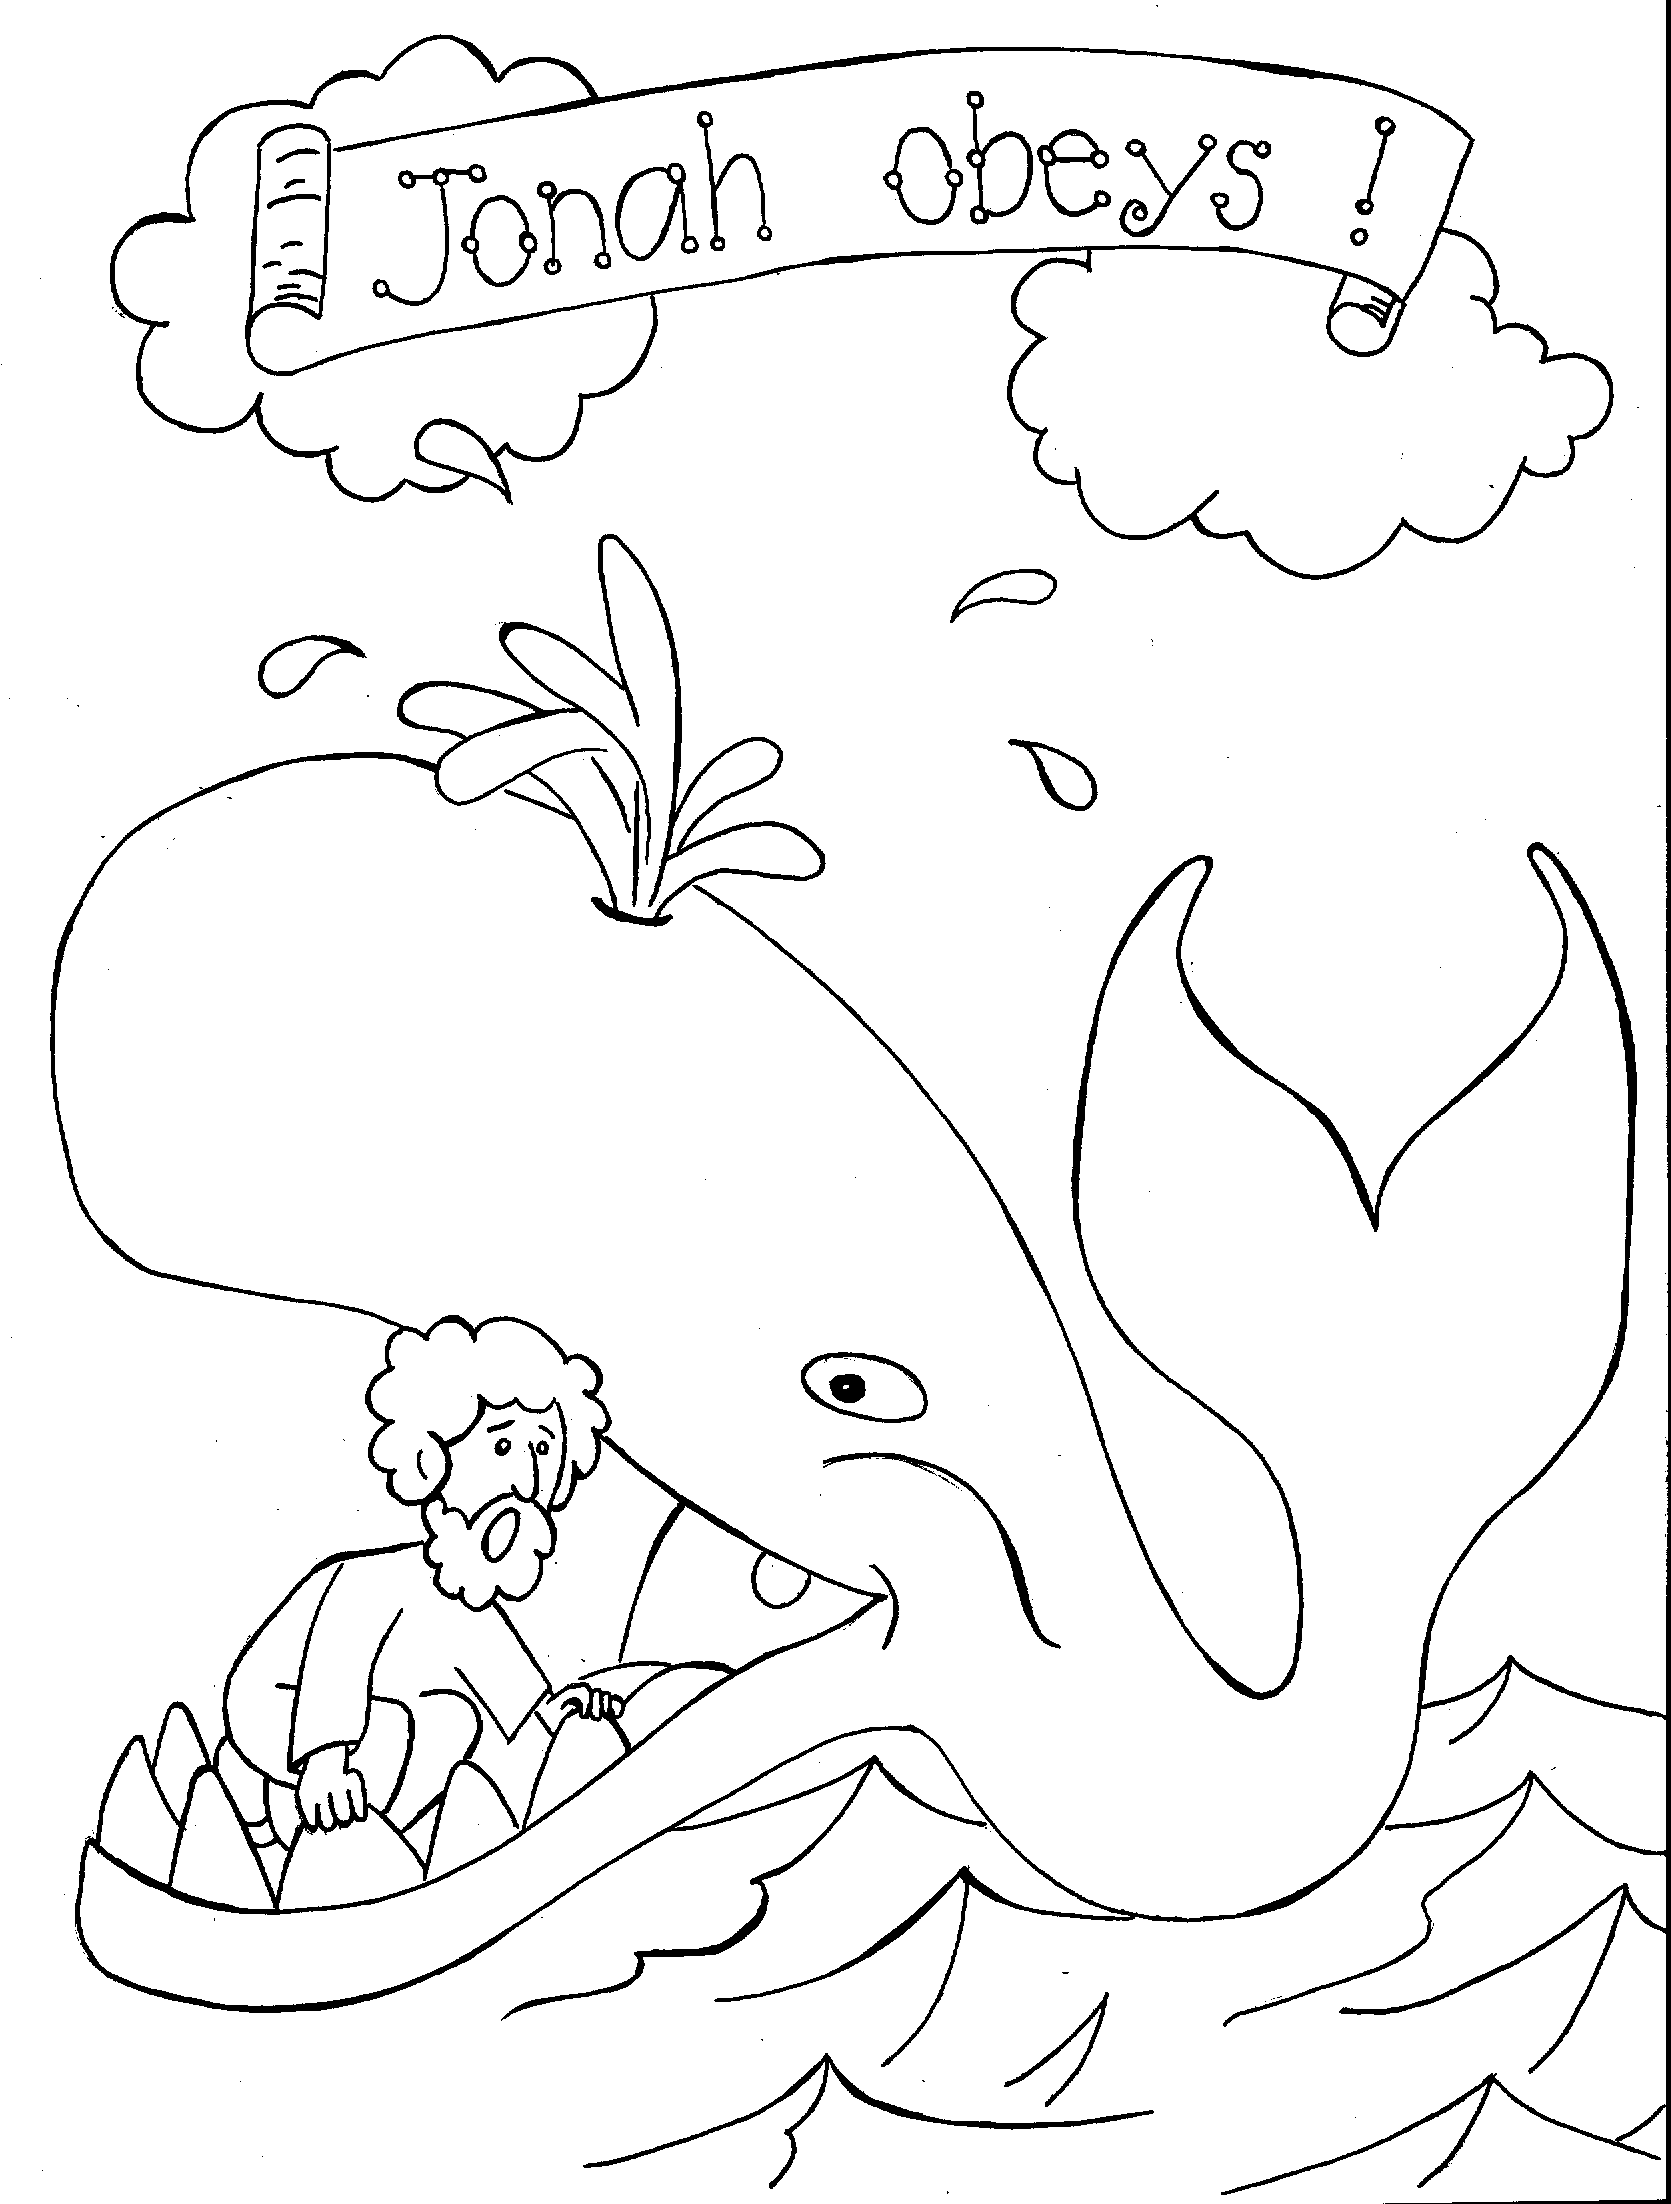 orca whale coloring page orca whale pages coloring pages page orca whale coloring